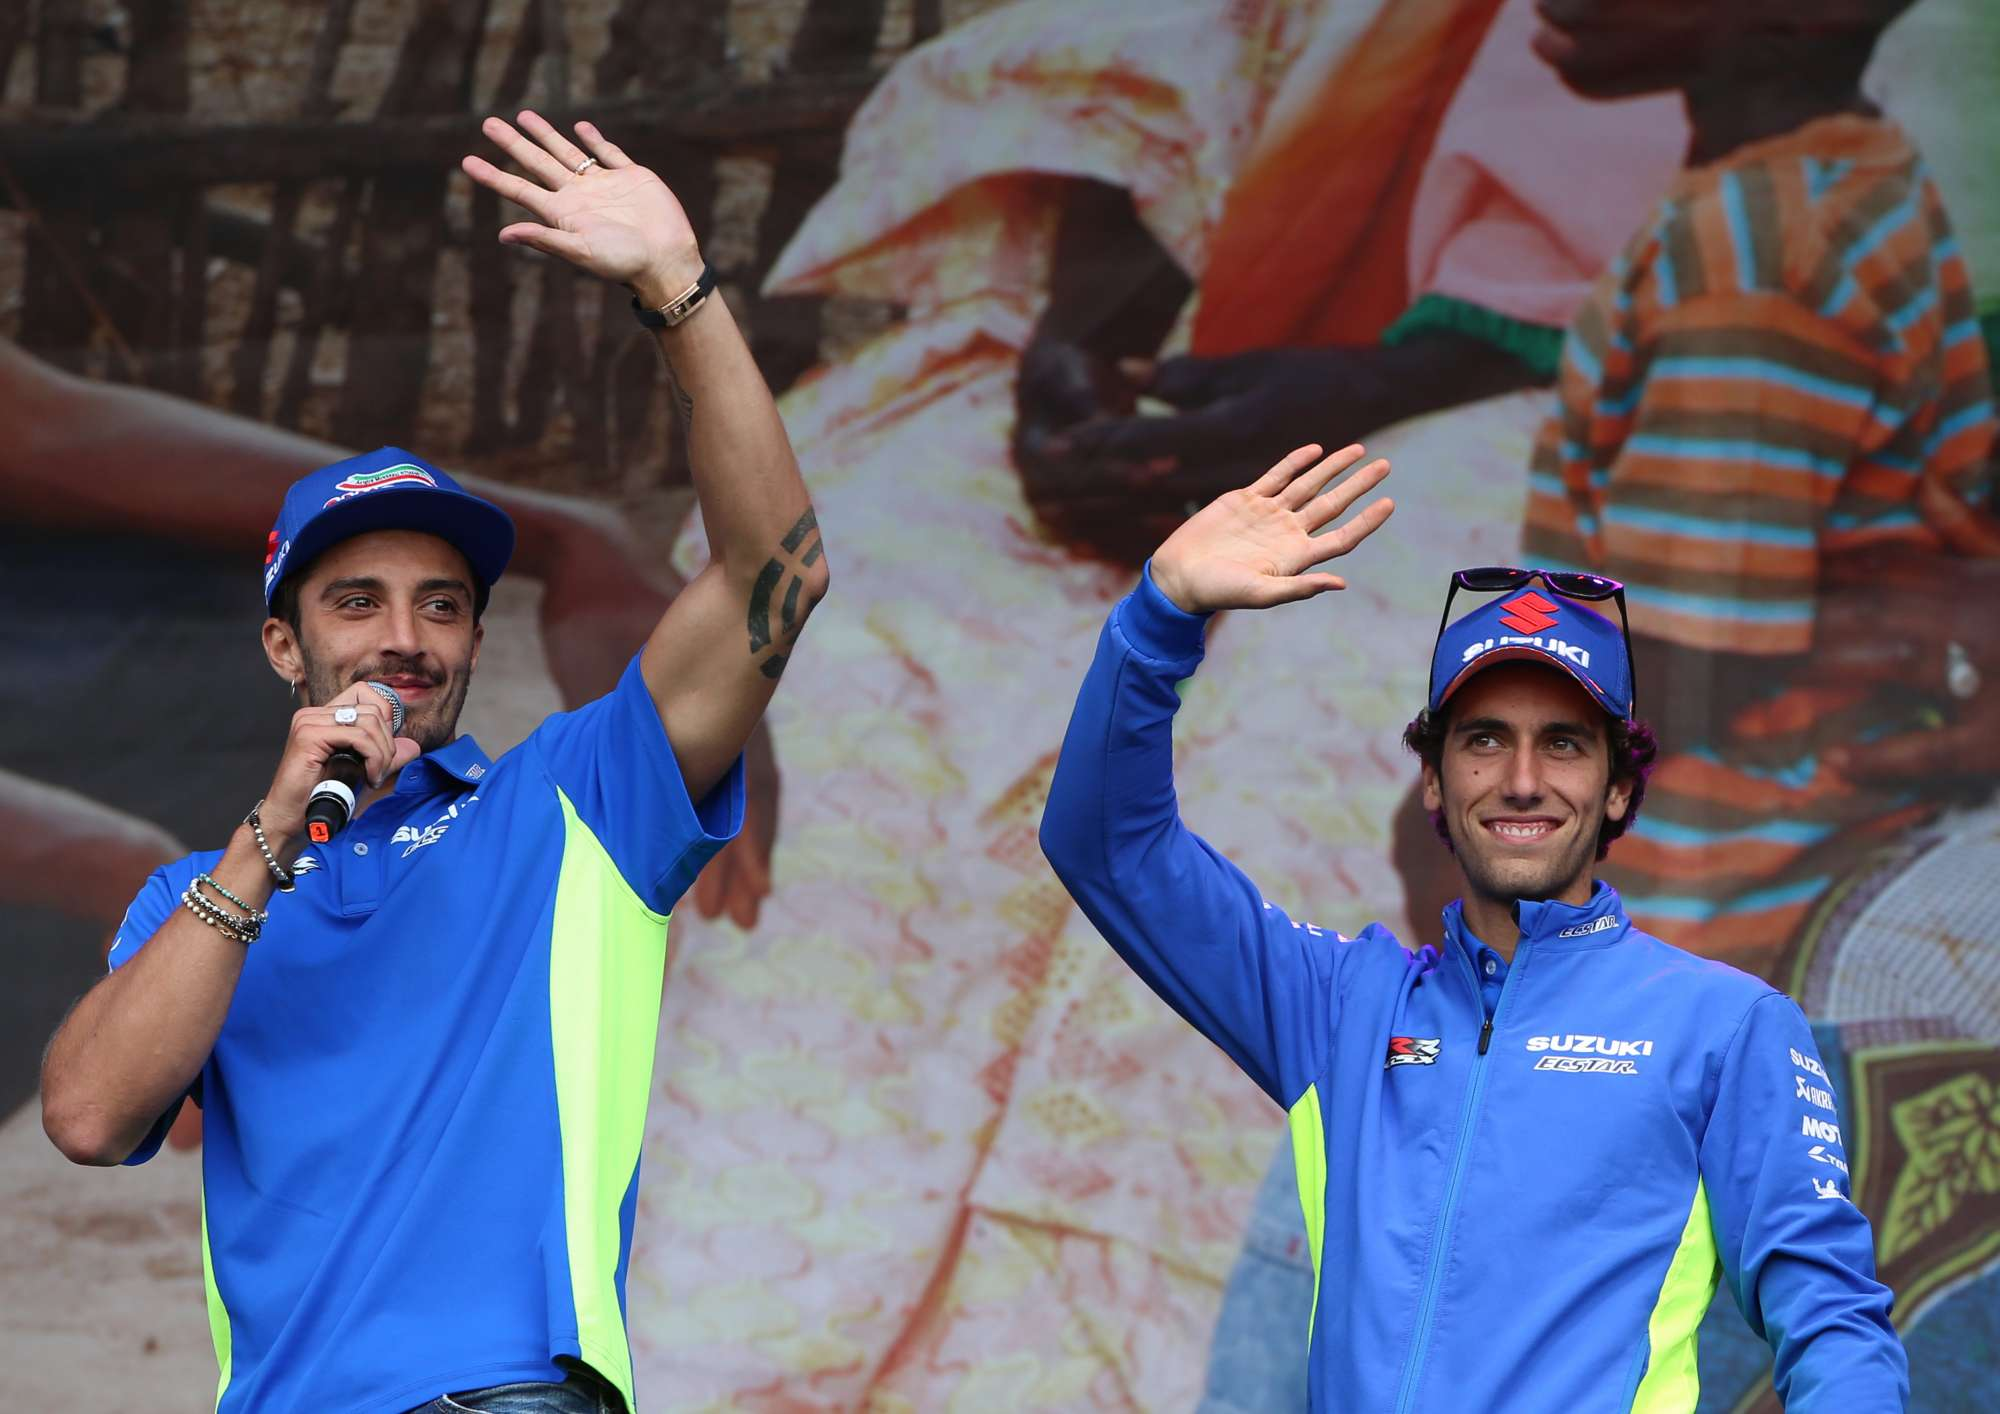 Andrea Iannone Alex Rins Silverstone Day of Champions Two Wheels for Life MotoGP